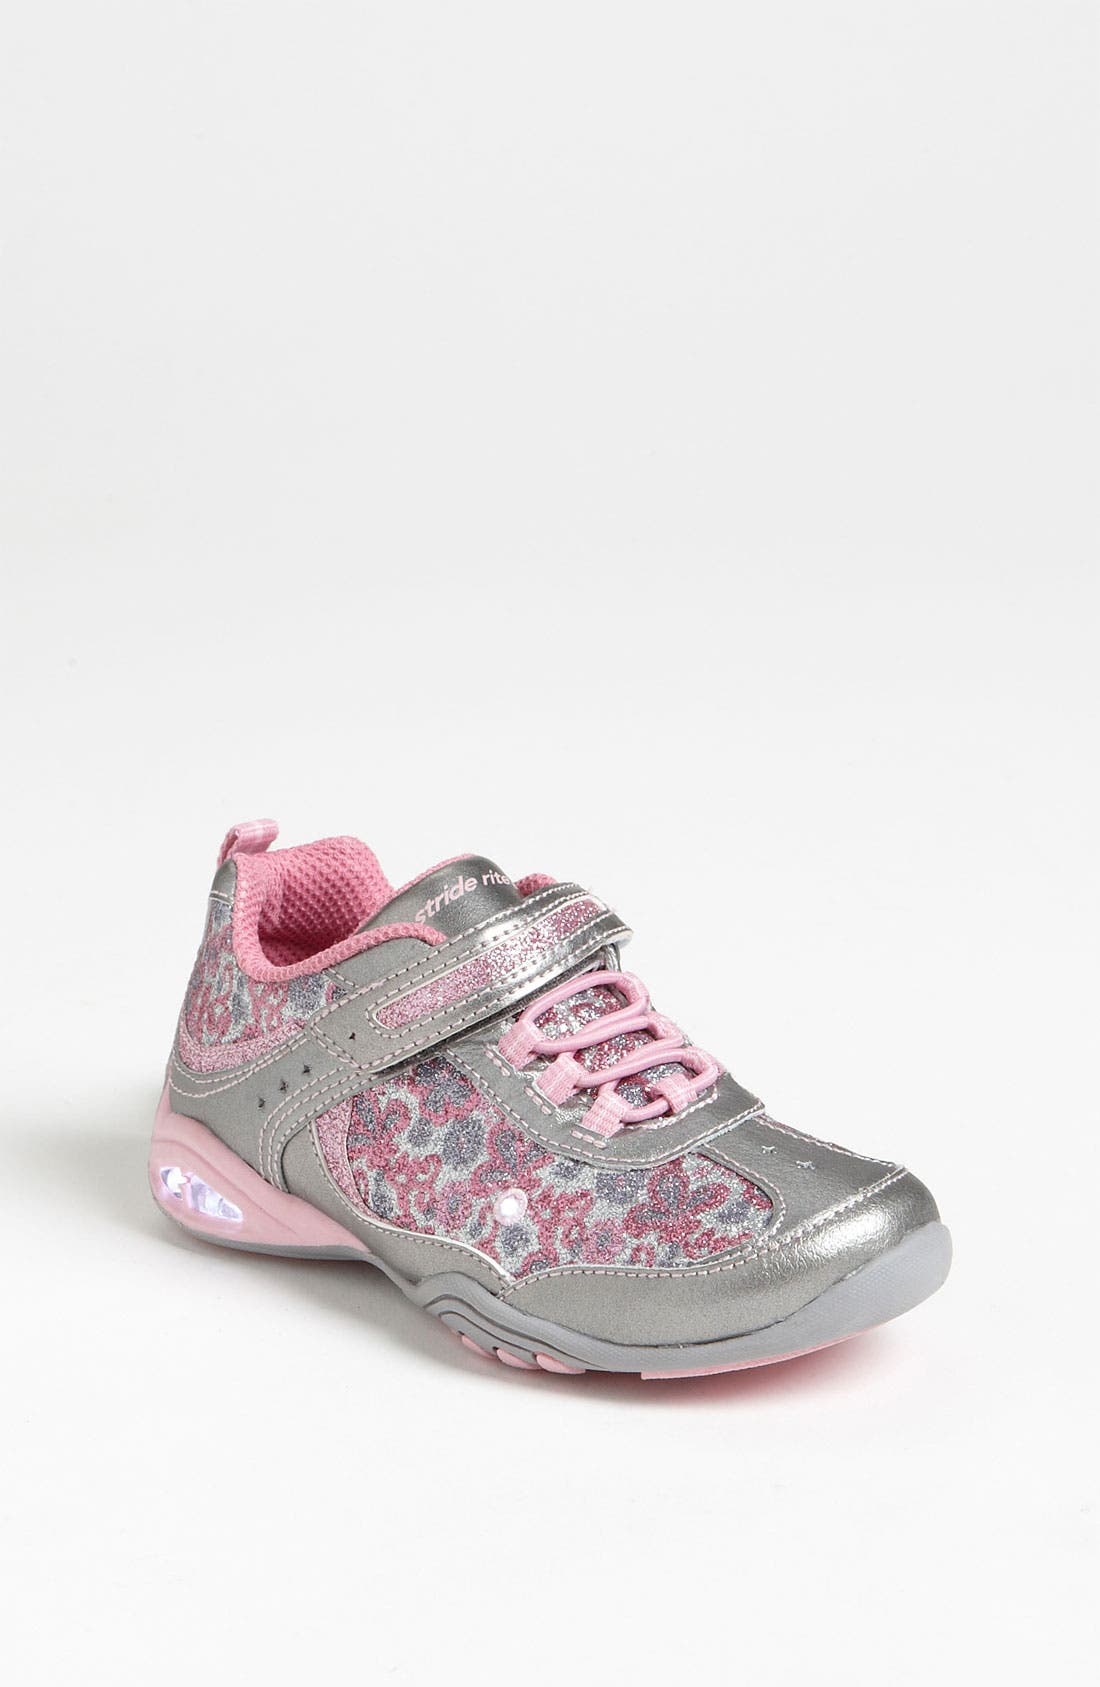 Alternate Image 1 Selected - Stride Rite 'Sierra' Sneaker (Walker, Toddler & Little Kid)